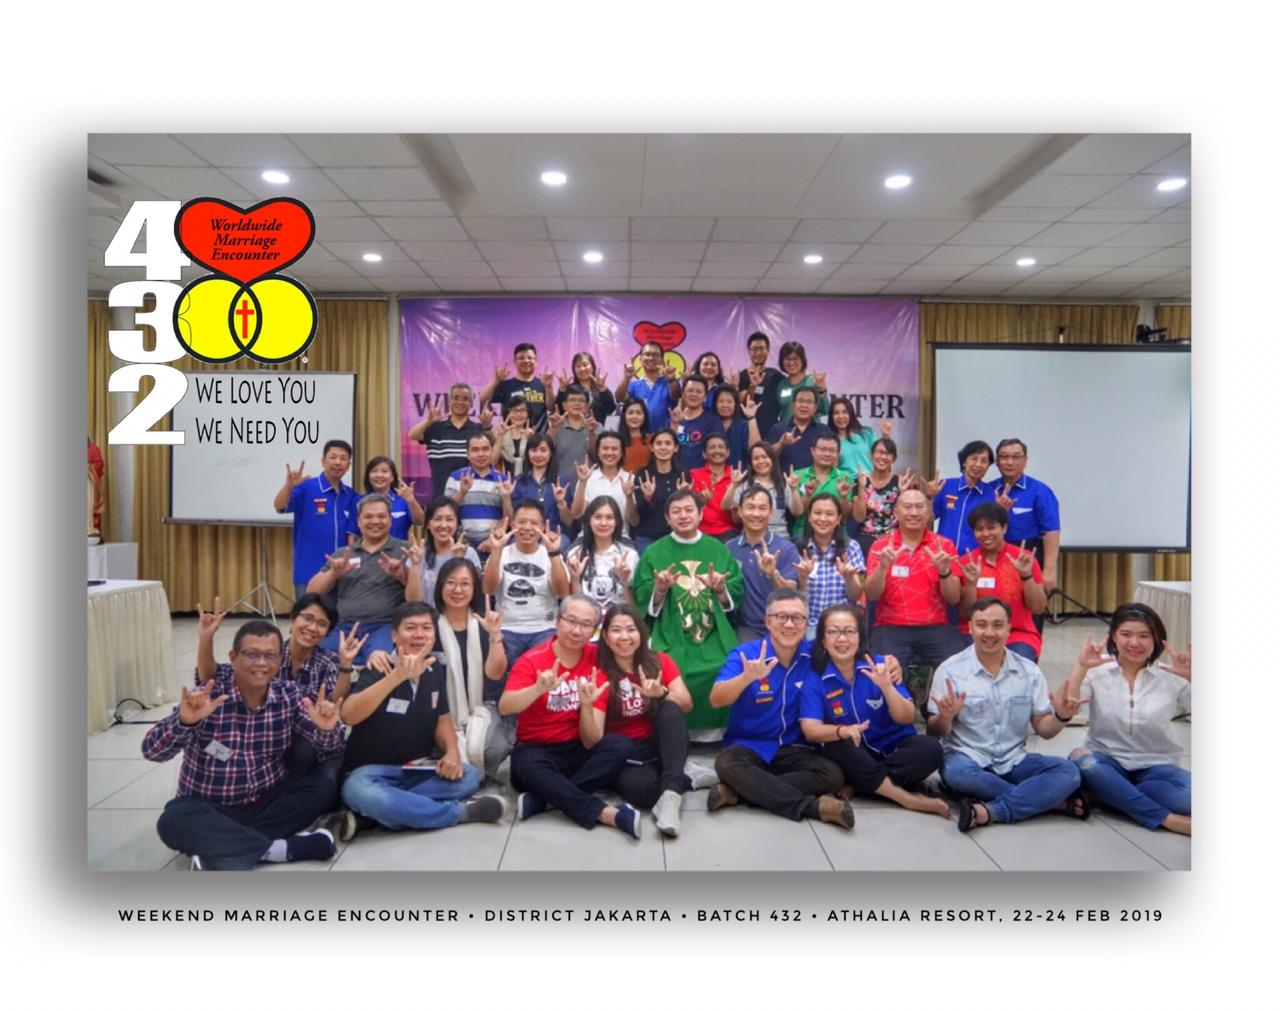 WE ME 22-24 FEB 2019 Angkatan 432